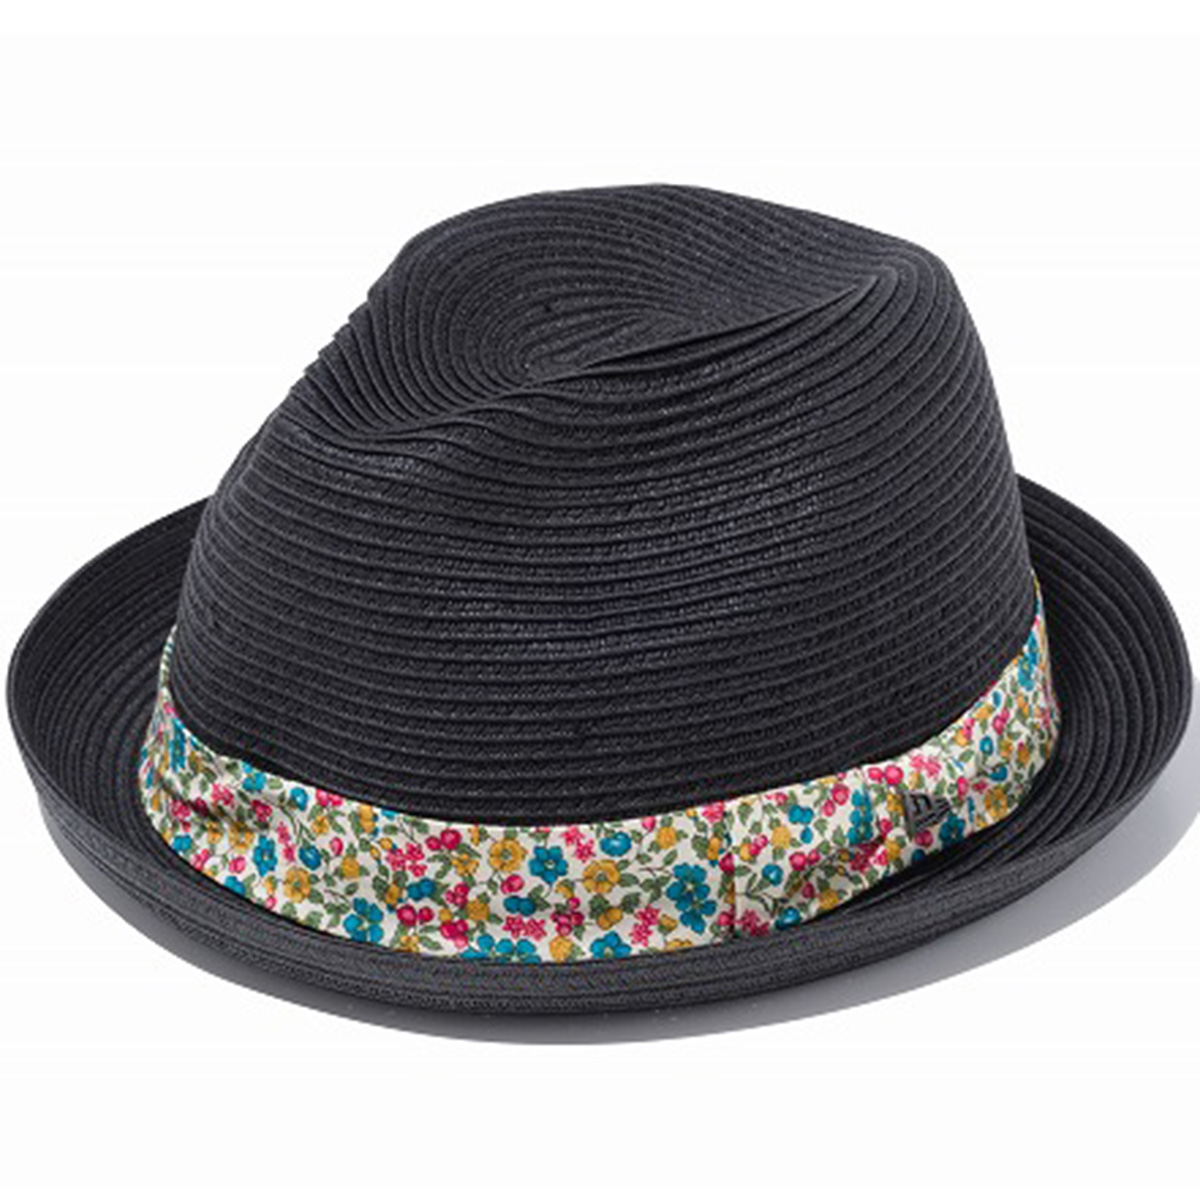 FEDORA BLKPRP FLOWER BAND ハット